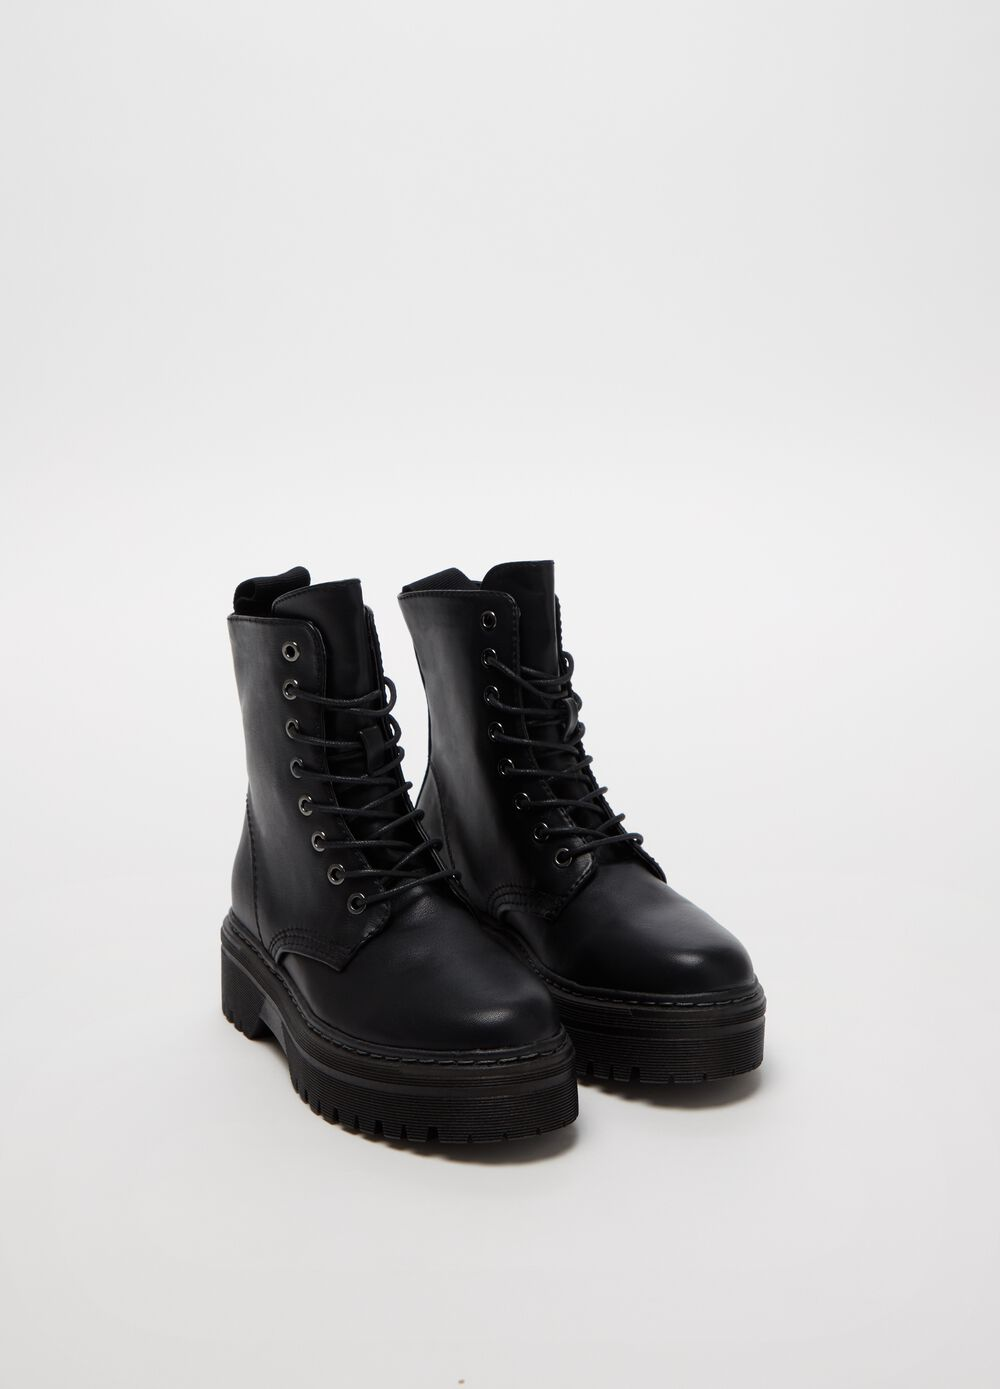 Leather-look combat boots with laces